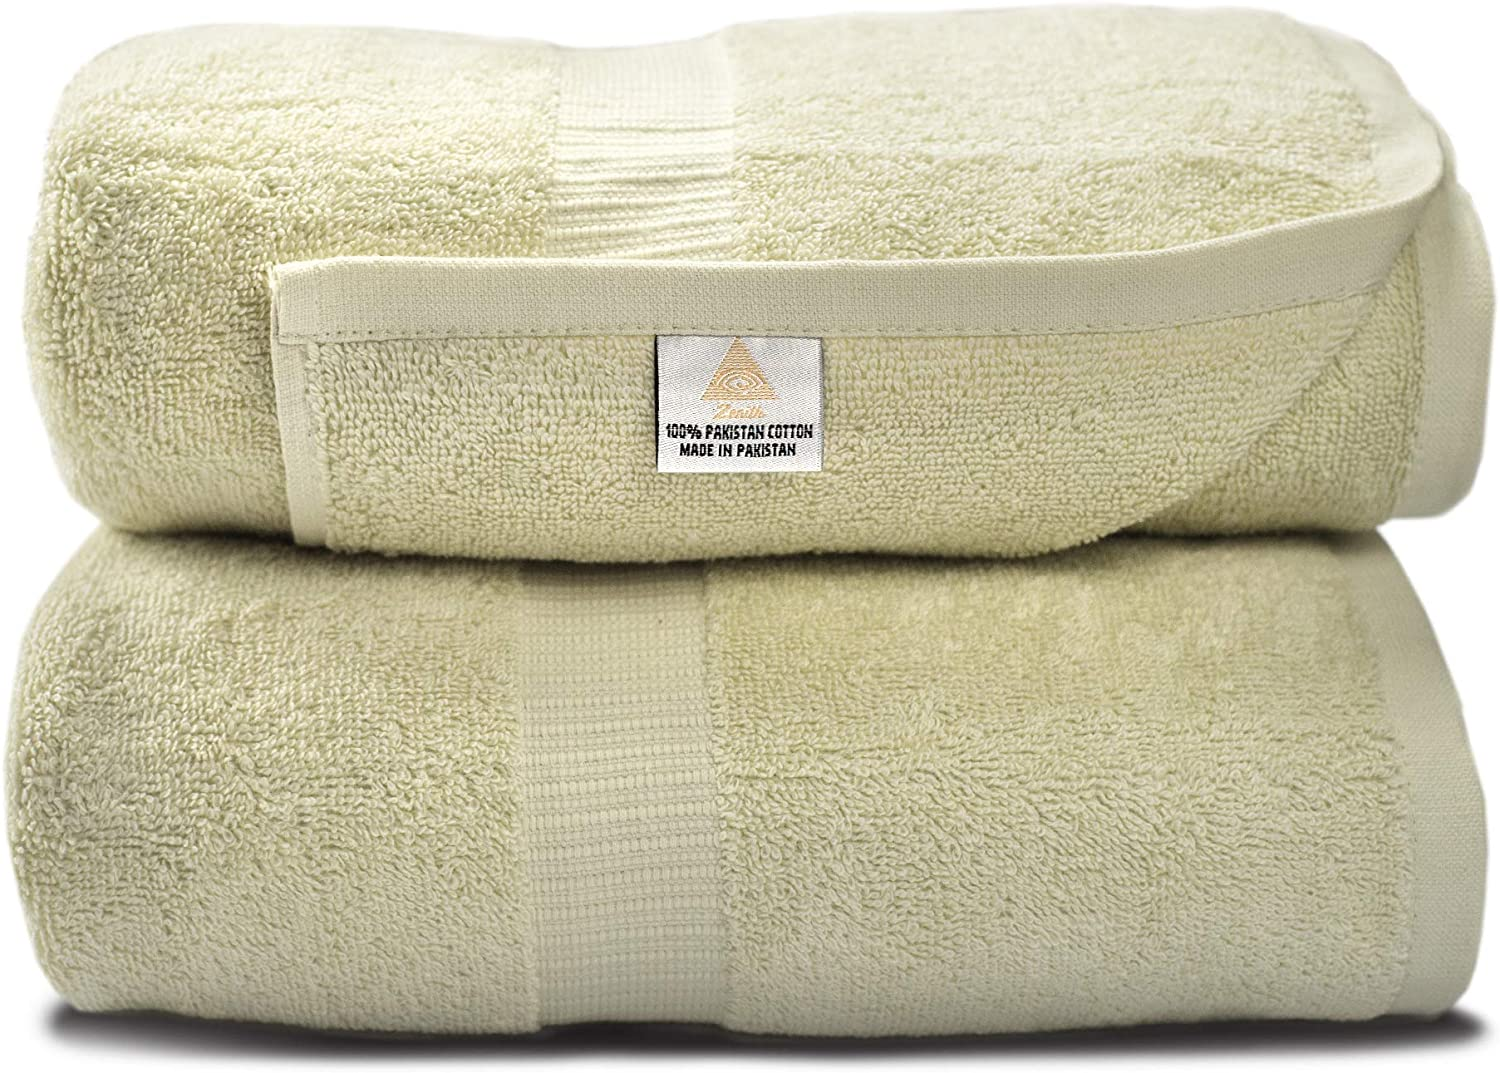 Zenith Luxury Bath Sheets - (2 Piece) Extra Large Size 40 X 70 Luxury Bath Sheets, Beach Towels, 600 GSM, Towels Bathroom Sets Clearance, Extra Large Bath Towels ,100% Cotton: Kitchen & Dining